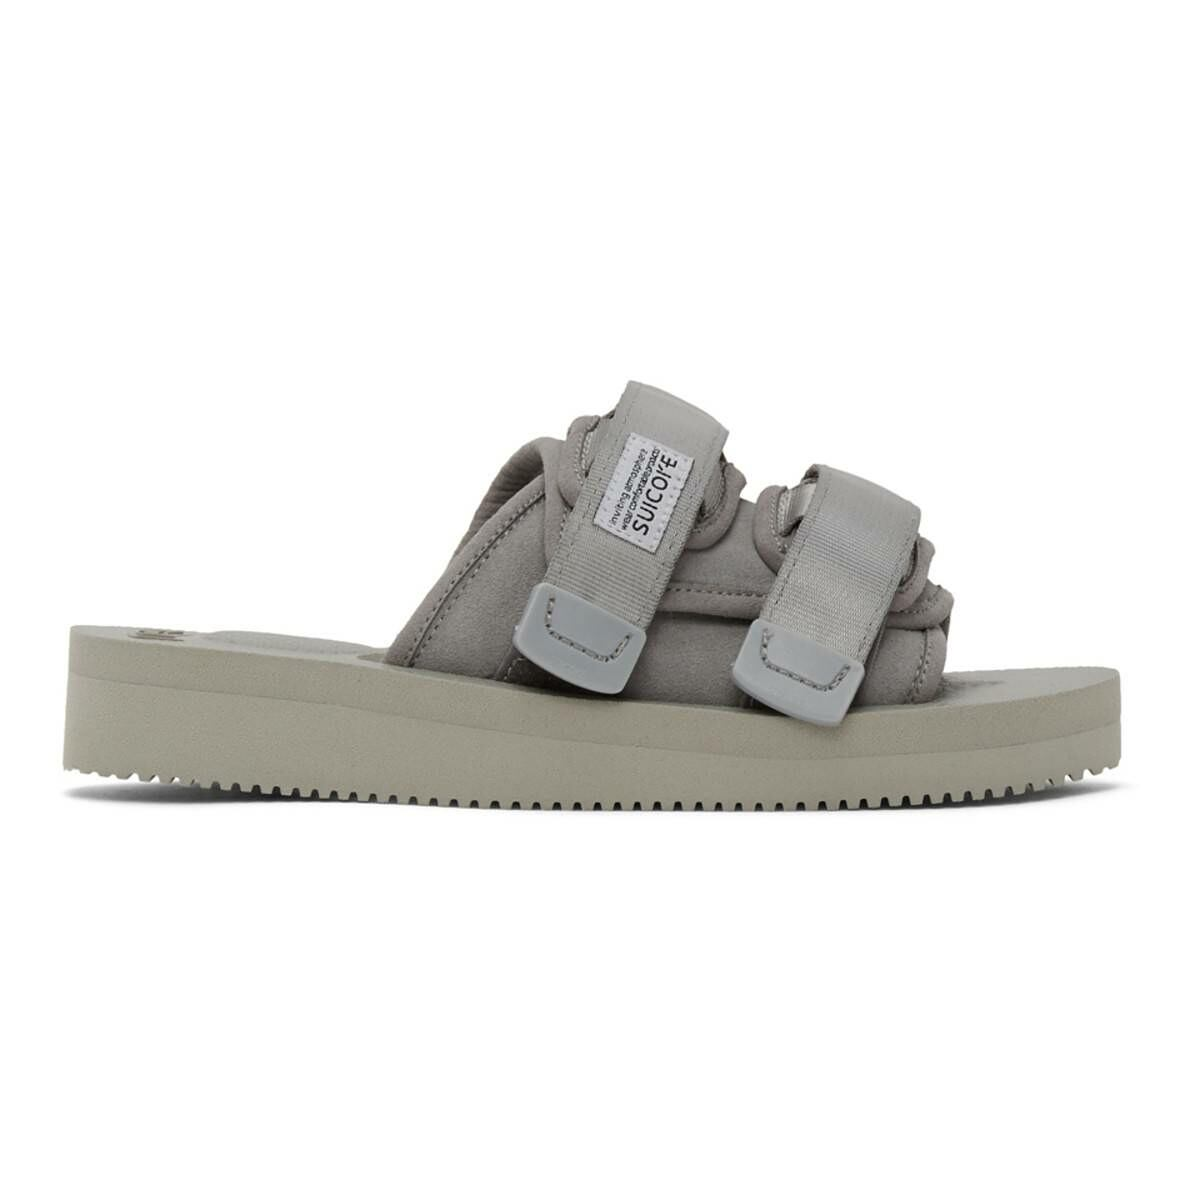 Suicoke Grey Moto-VS Sandals Ssense USA MEN Men SHOES Mens SANDALS